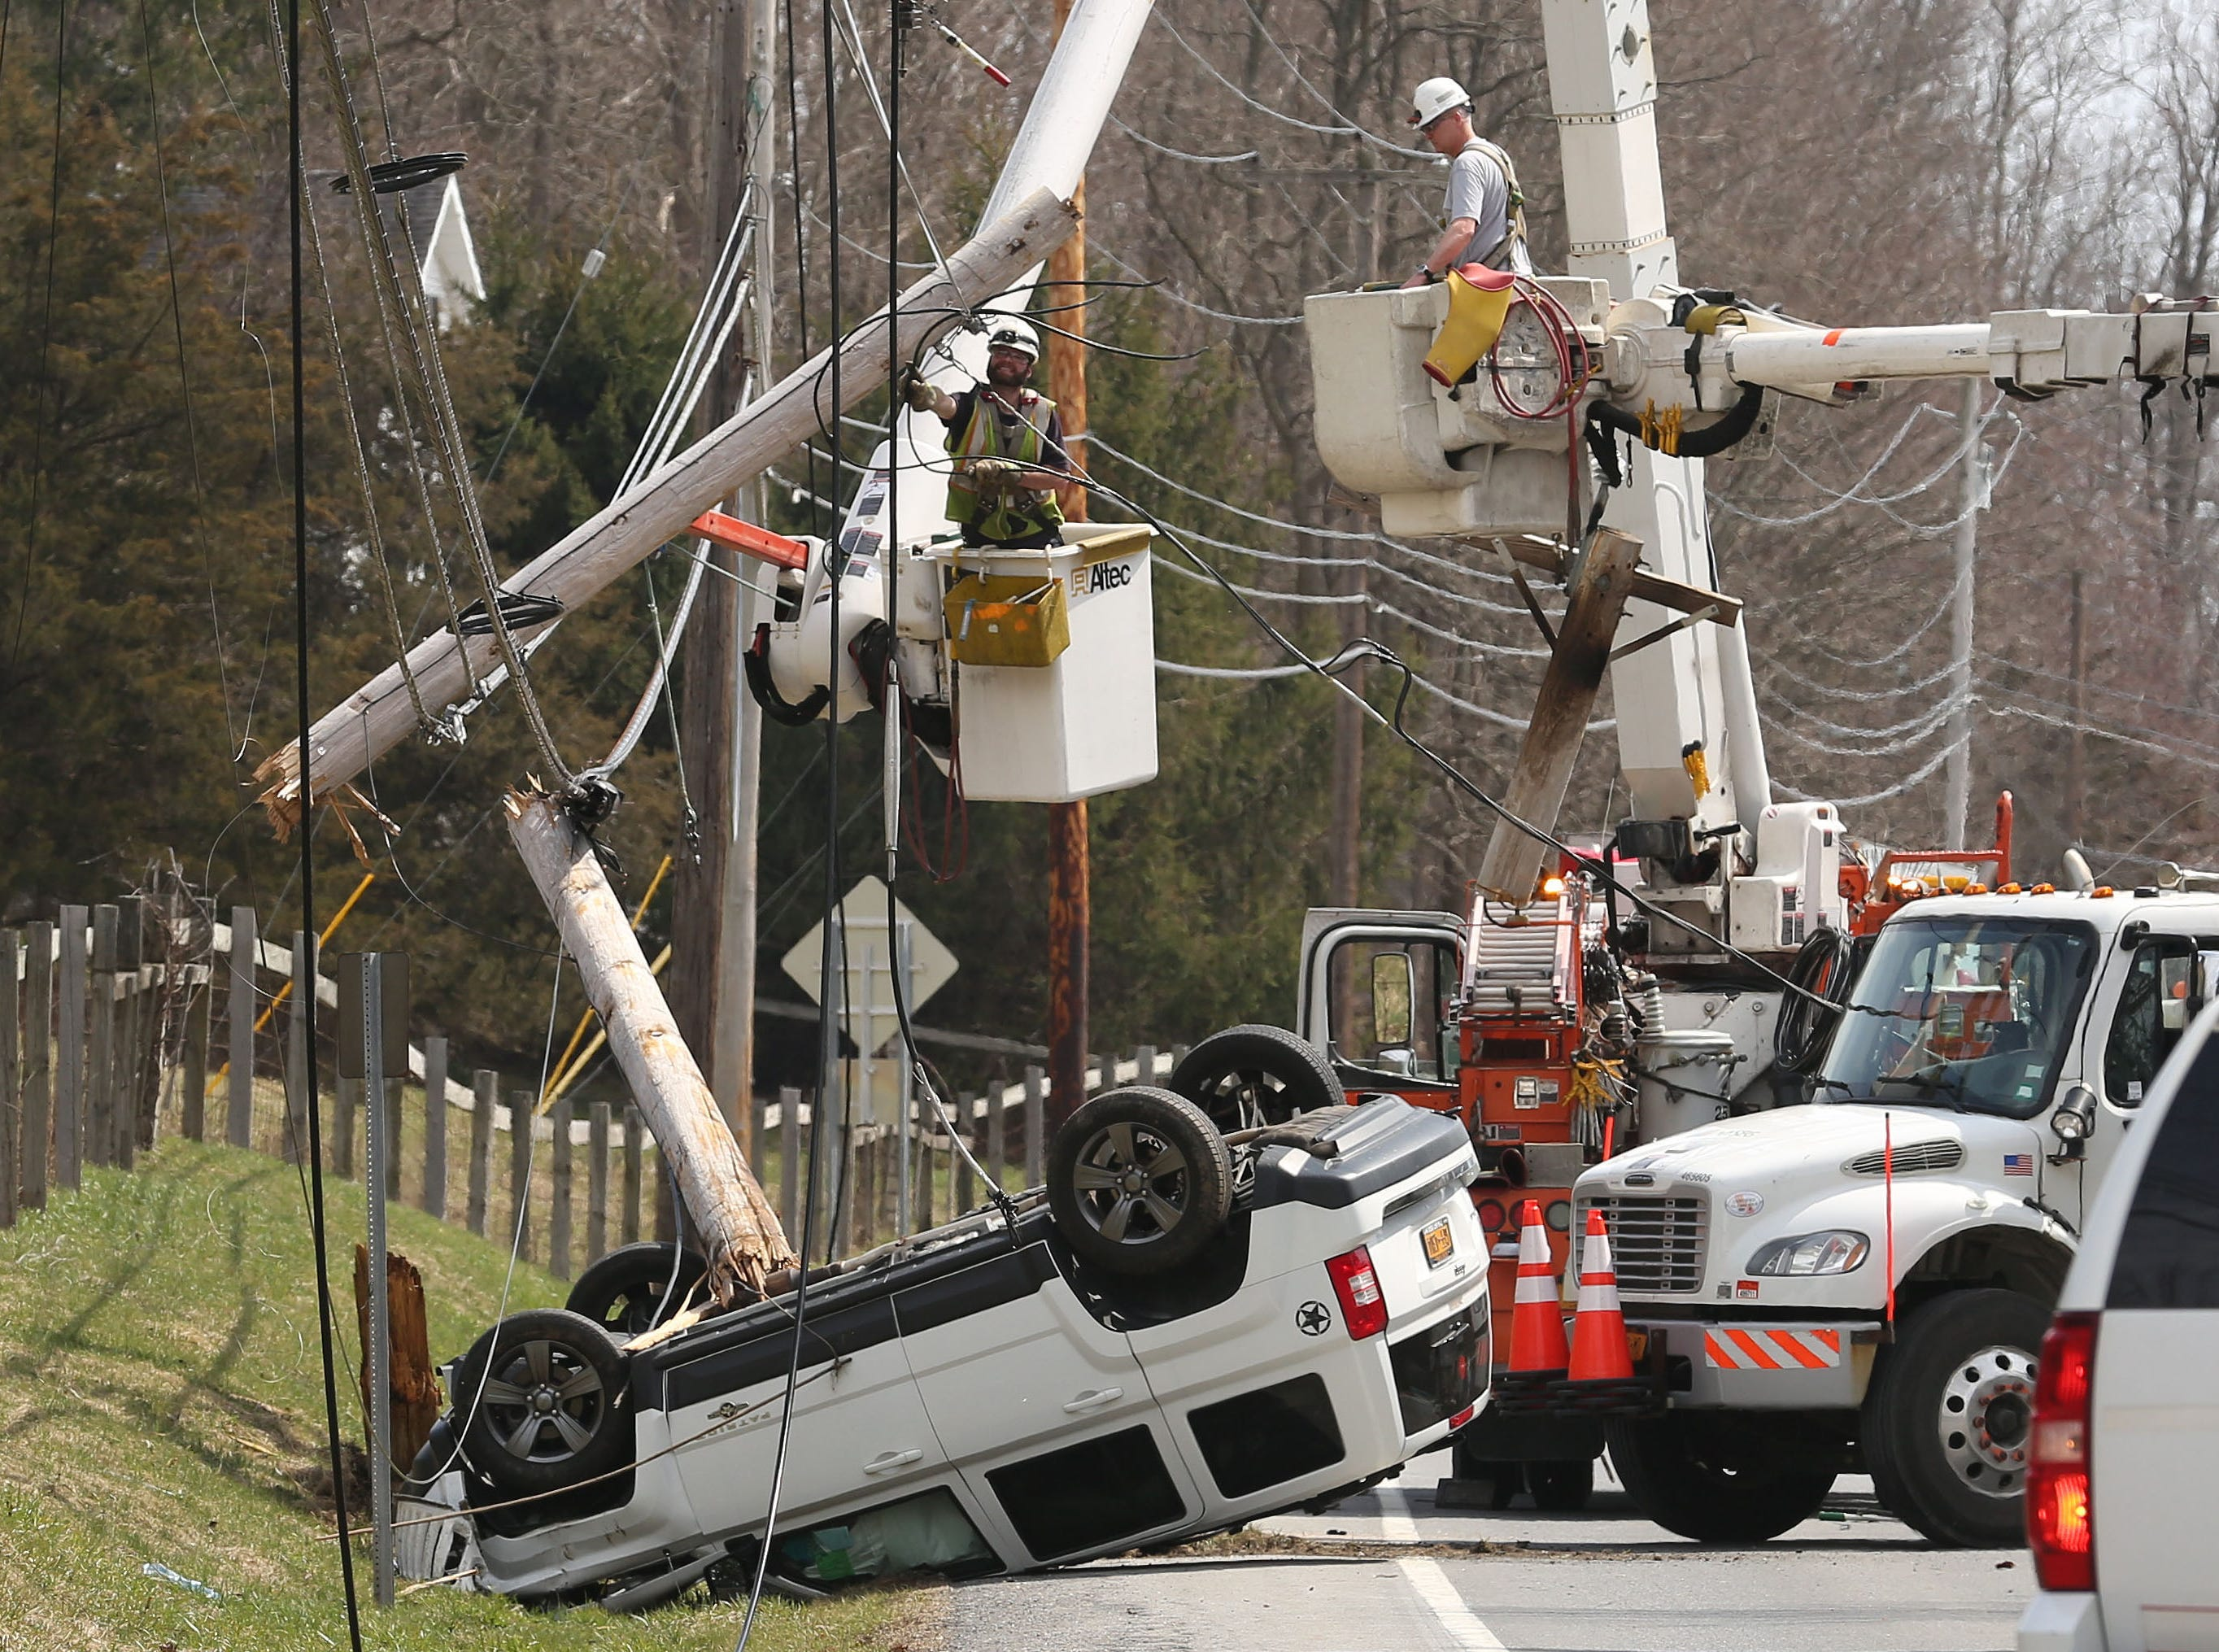 NYSEG utility crews work to repair damaged poles after a car rolled over on Route 22 in Patterson April 13, 2018. The driver of the car was able to escape with only minor injuries. Route 22 was closed in both directions from Route 311 to Havilland Hollow Road.